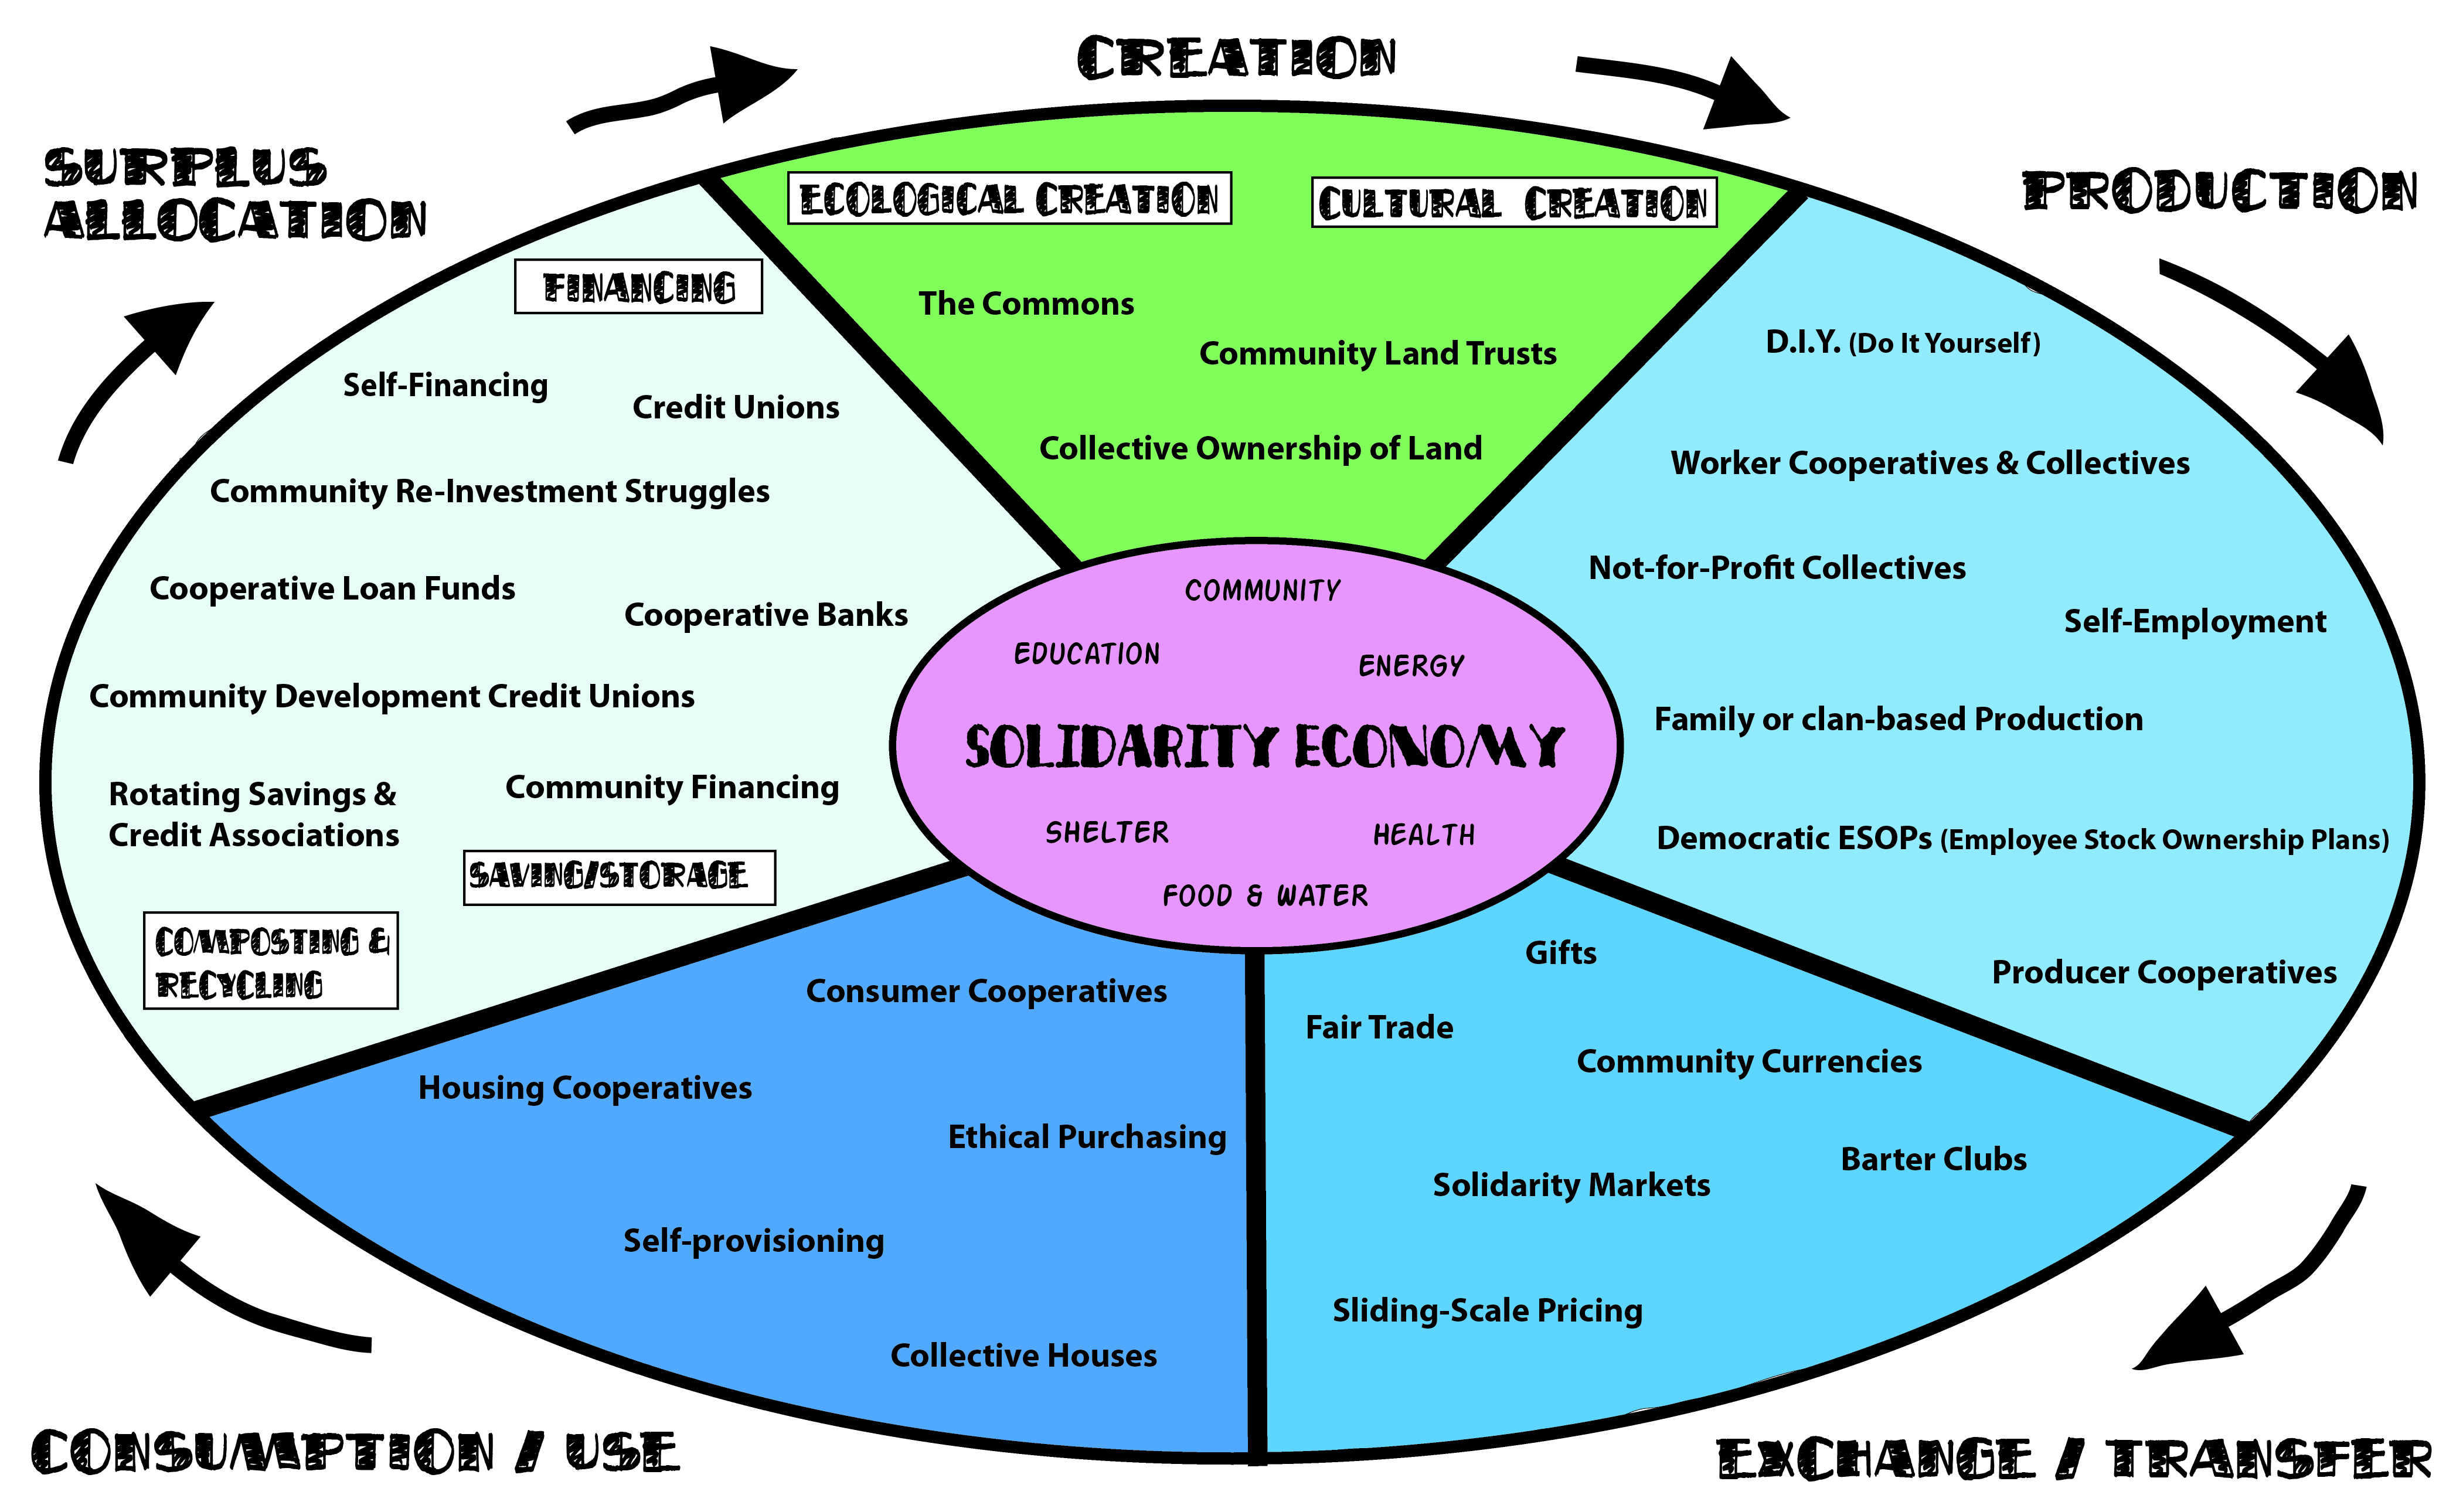 types of economic system essay A mixed economy is a combination of different types of economic systems this economic system is a cross between a market economy and command economy in the most common types of mixed economies, the market is more or less free of government ownership except for a few key areas like transportation or sensitive industries like defense and railroad.